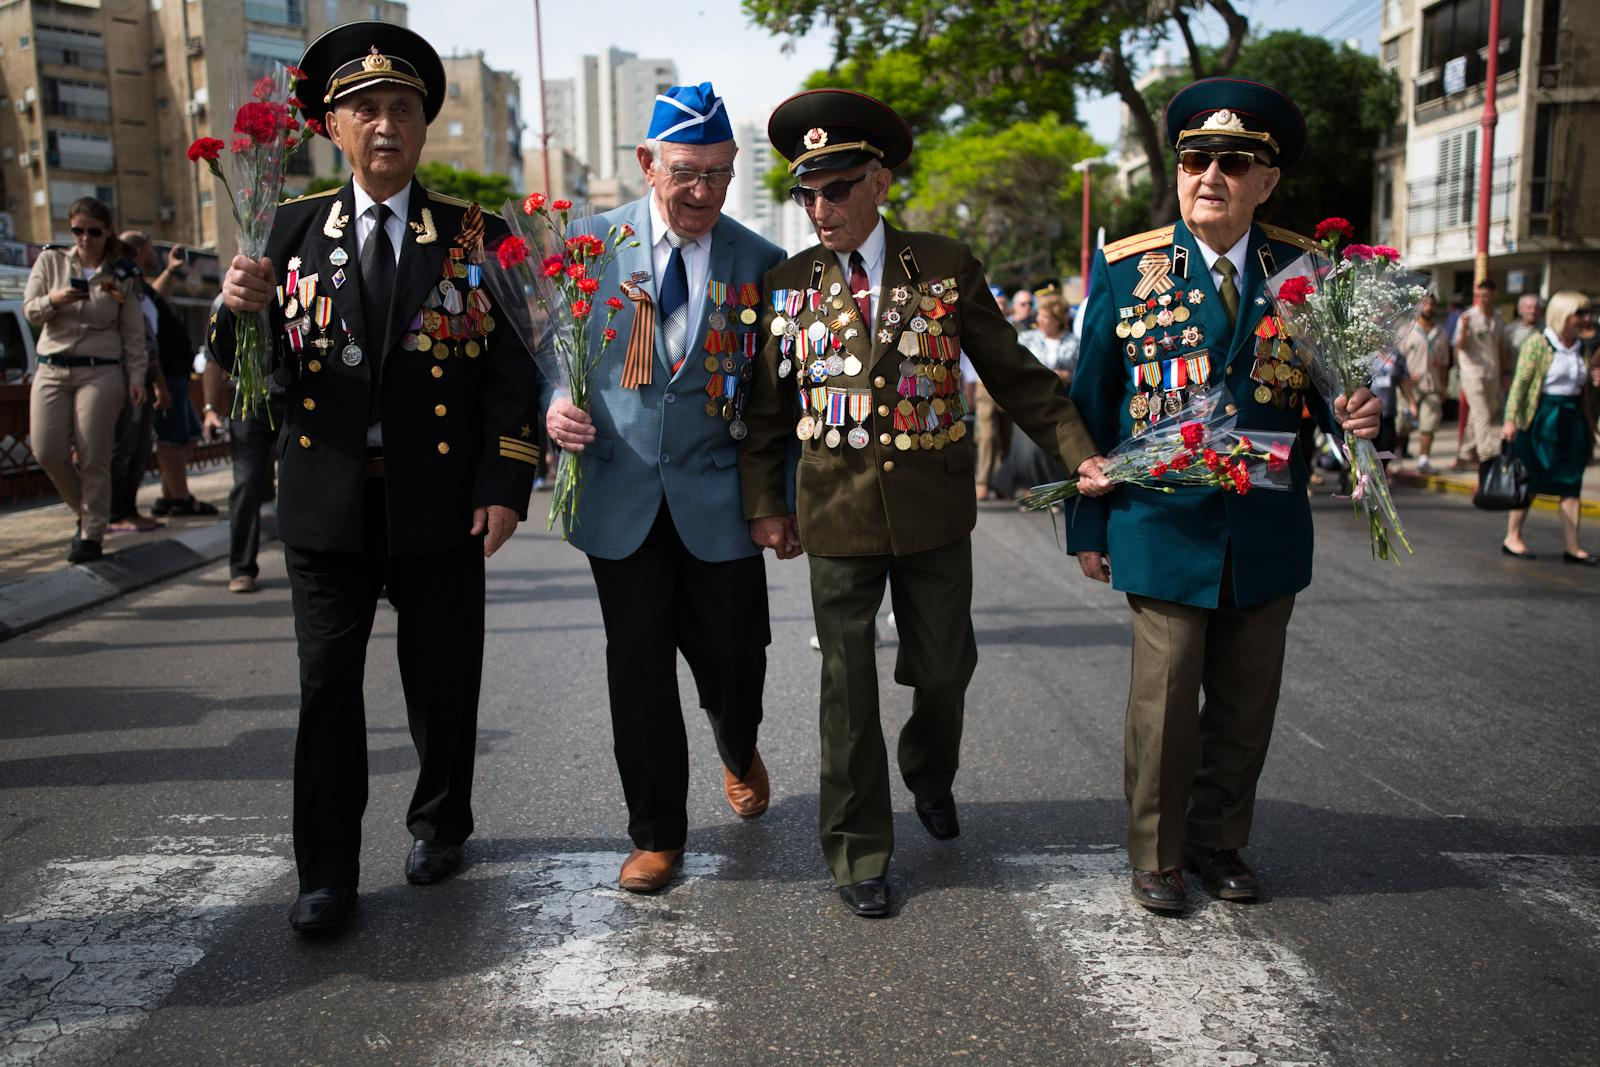 ASHDOD, ISRAEL - MAY 09, 2016: Russian-Israeli World War II veterans take part in the Veterans Day parade in honor of 71 years since the Allies' victory over Nazi Germany in World War II, in Ashdod, May 09, 2016.